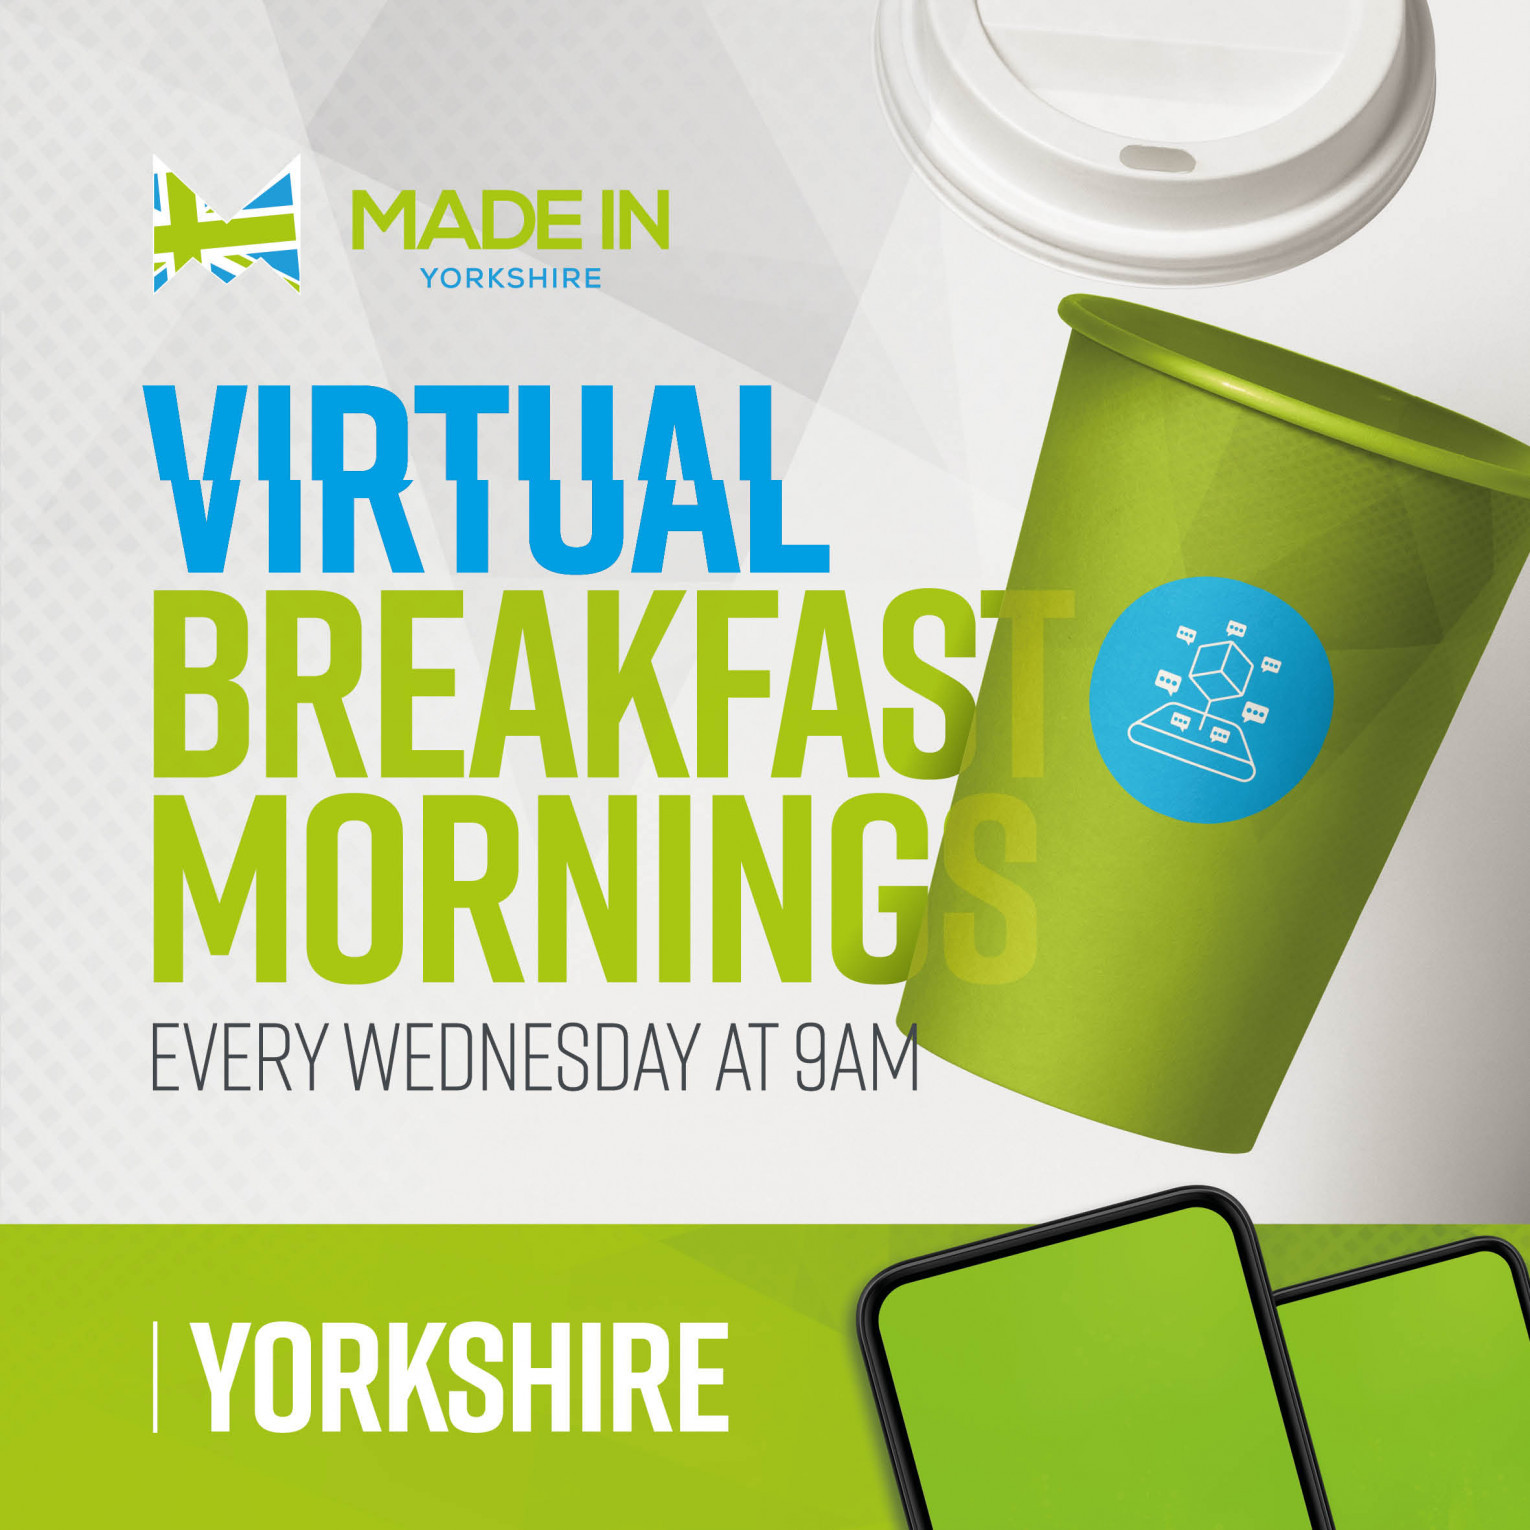 Made in Yorkshire Virtual Breakfast Morning with ADT Flexibles